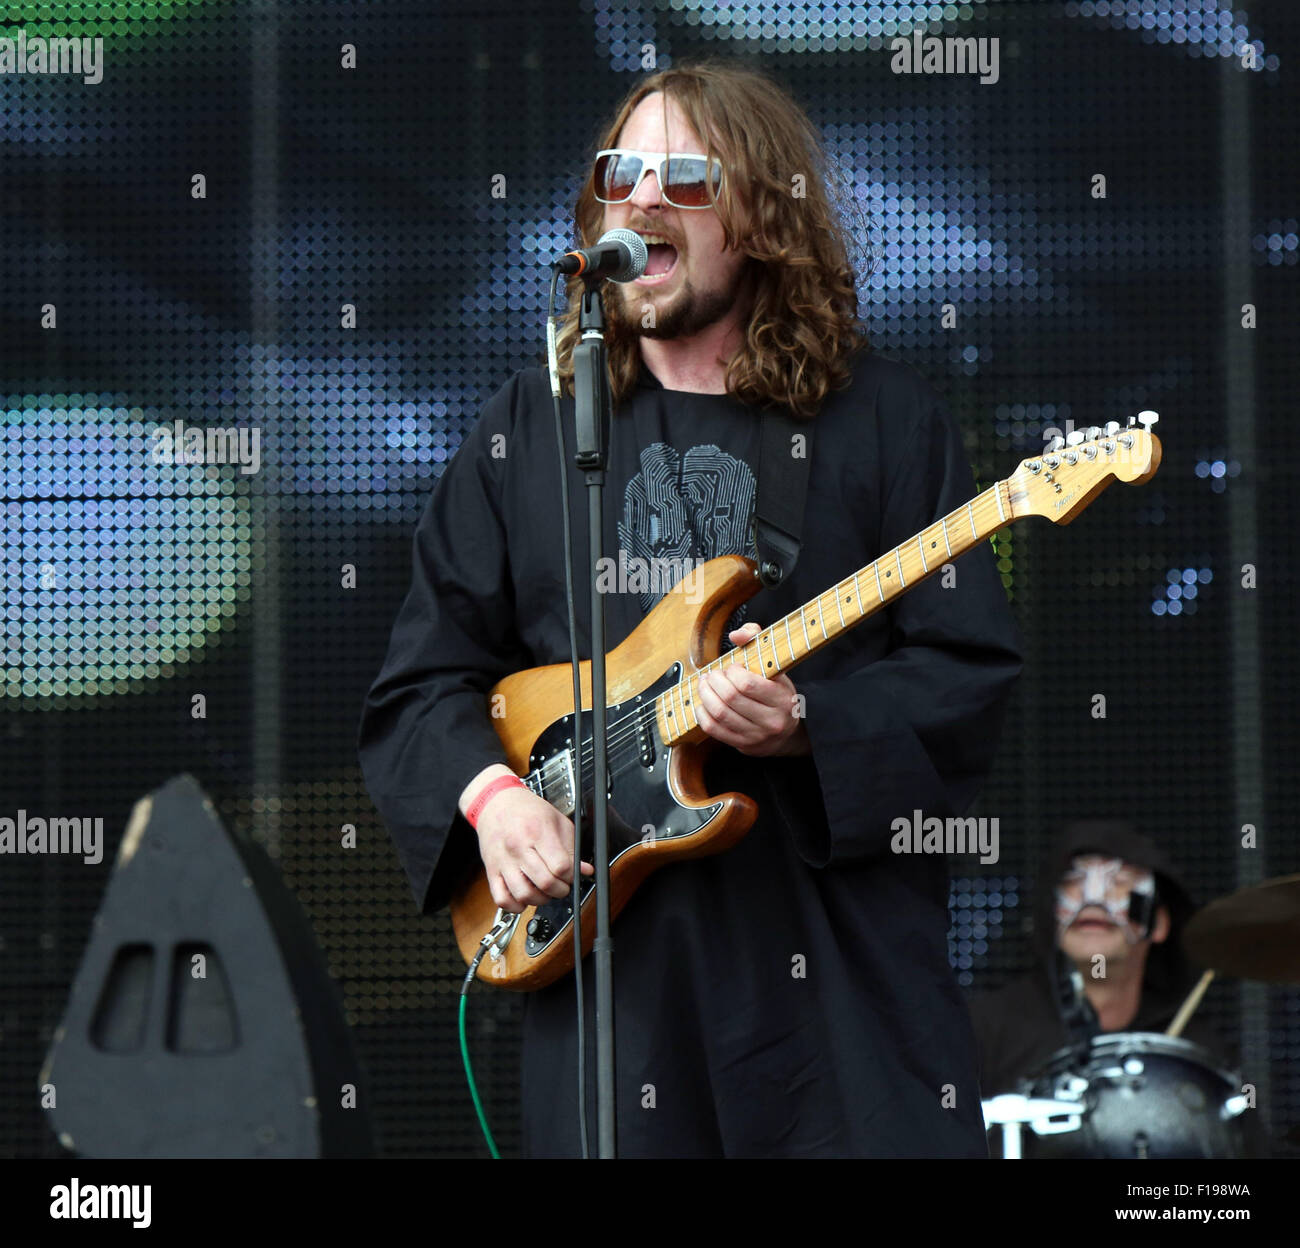 Portsmouth, UK. Sunday 30th August 2015. Victorious Festival - Sunday  Dave McCabe performing on the Common Stage Stock Photo